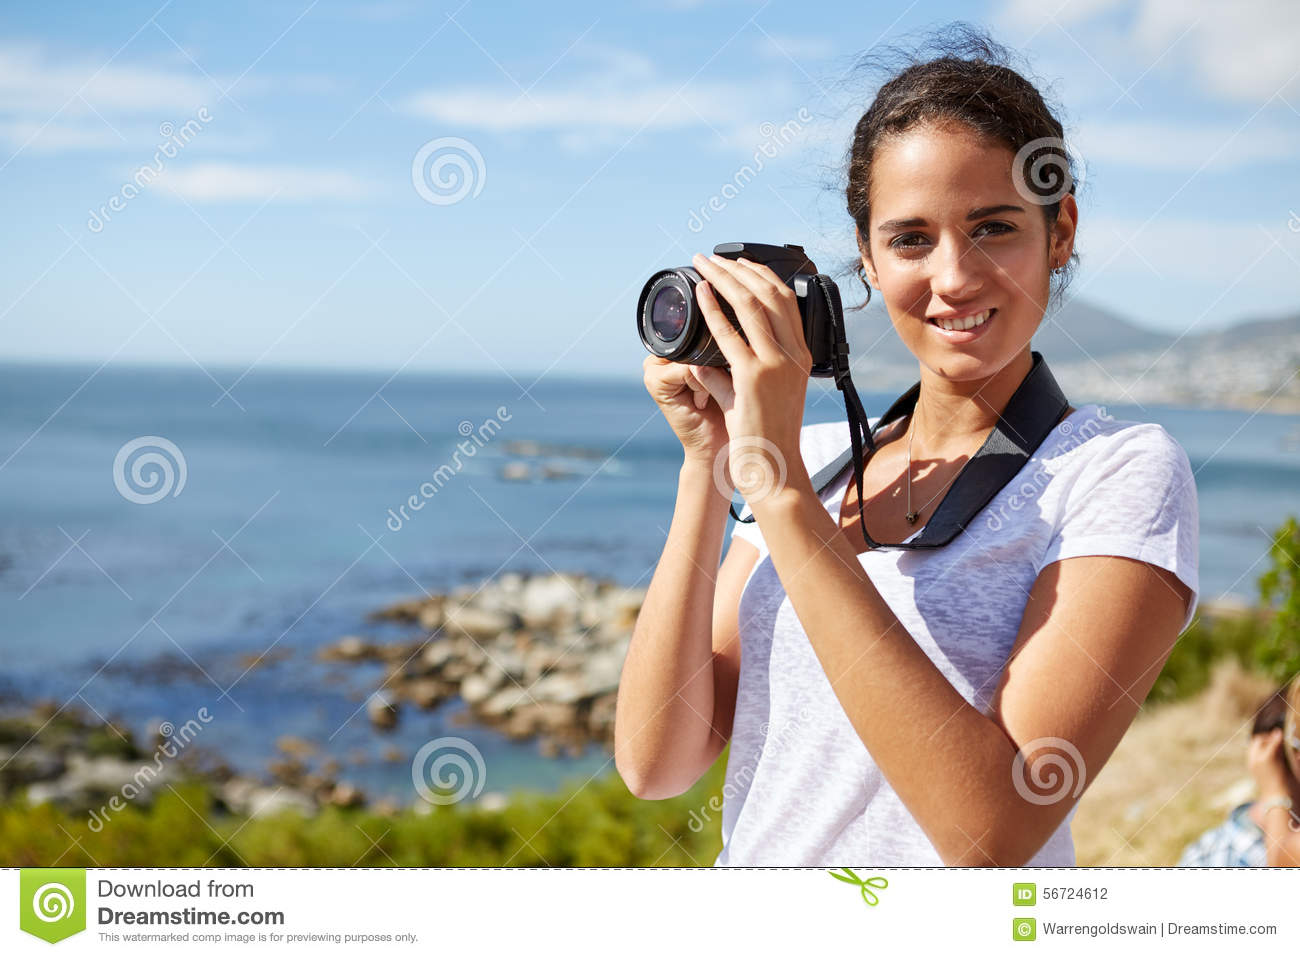 Portrait of a young, attractive woman standing near the ocean wi